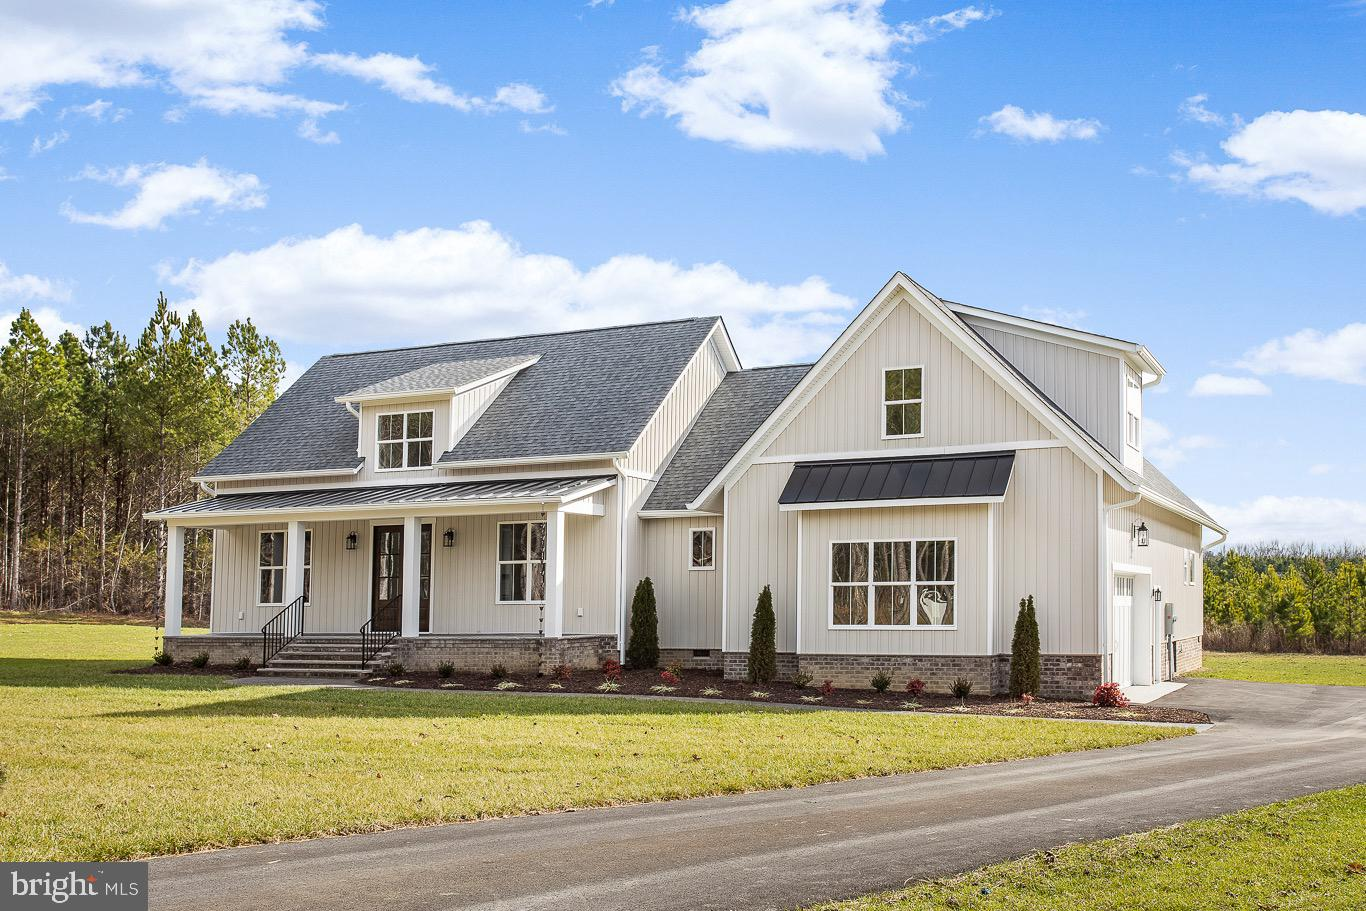 15190 WHITETAIL HOLLOW CT., DOSWELL, VA 23047